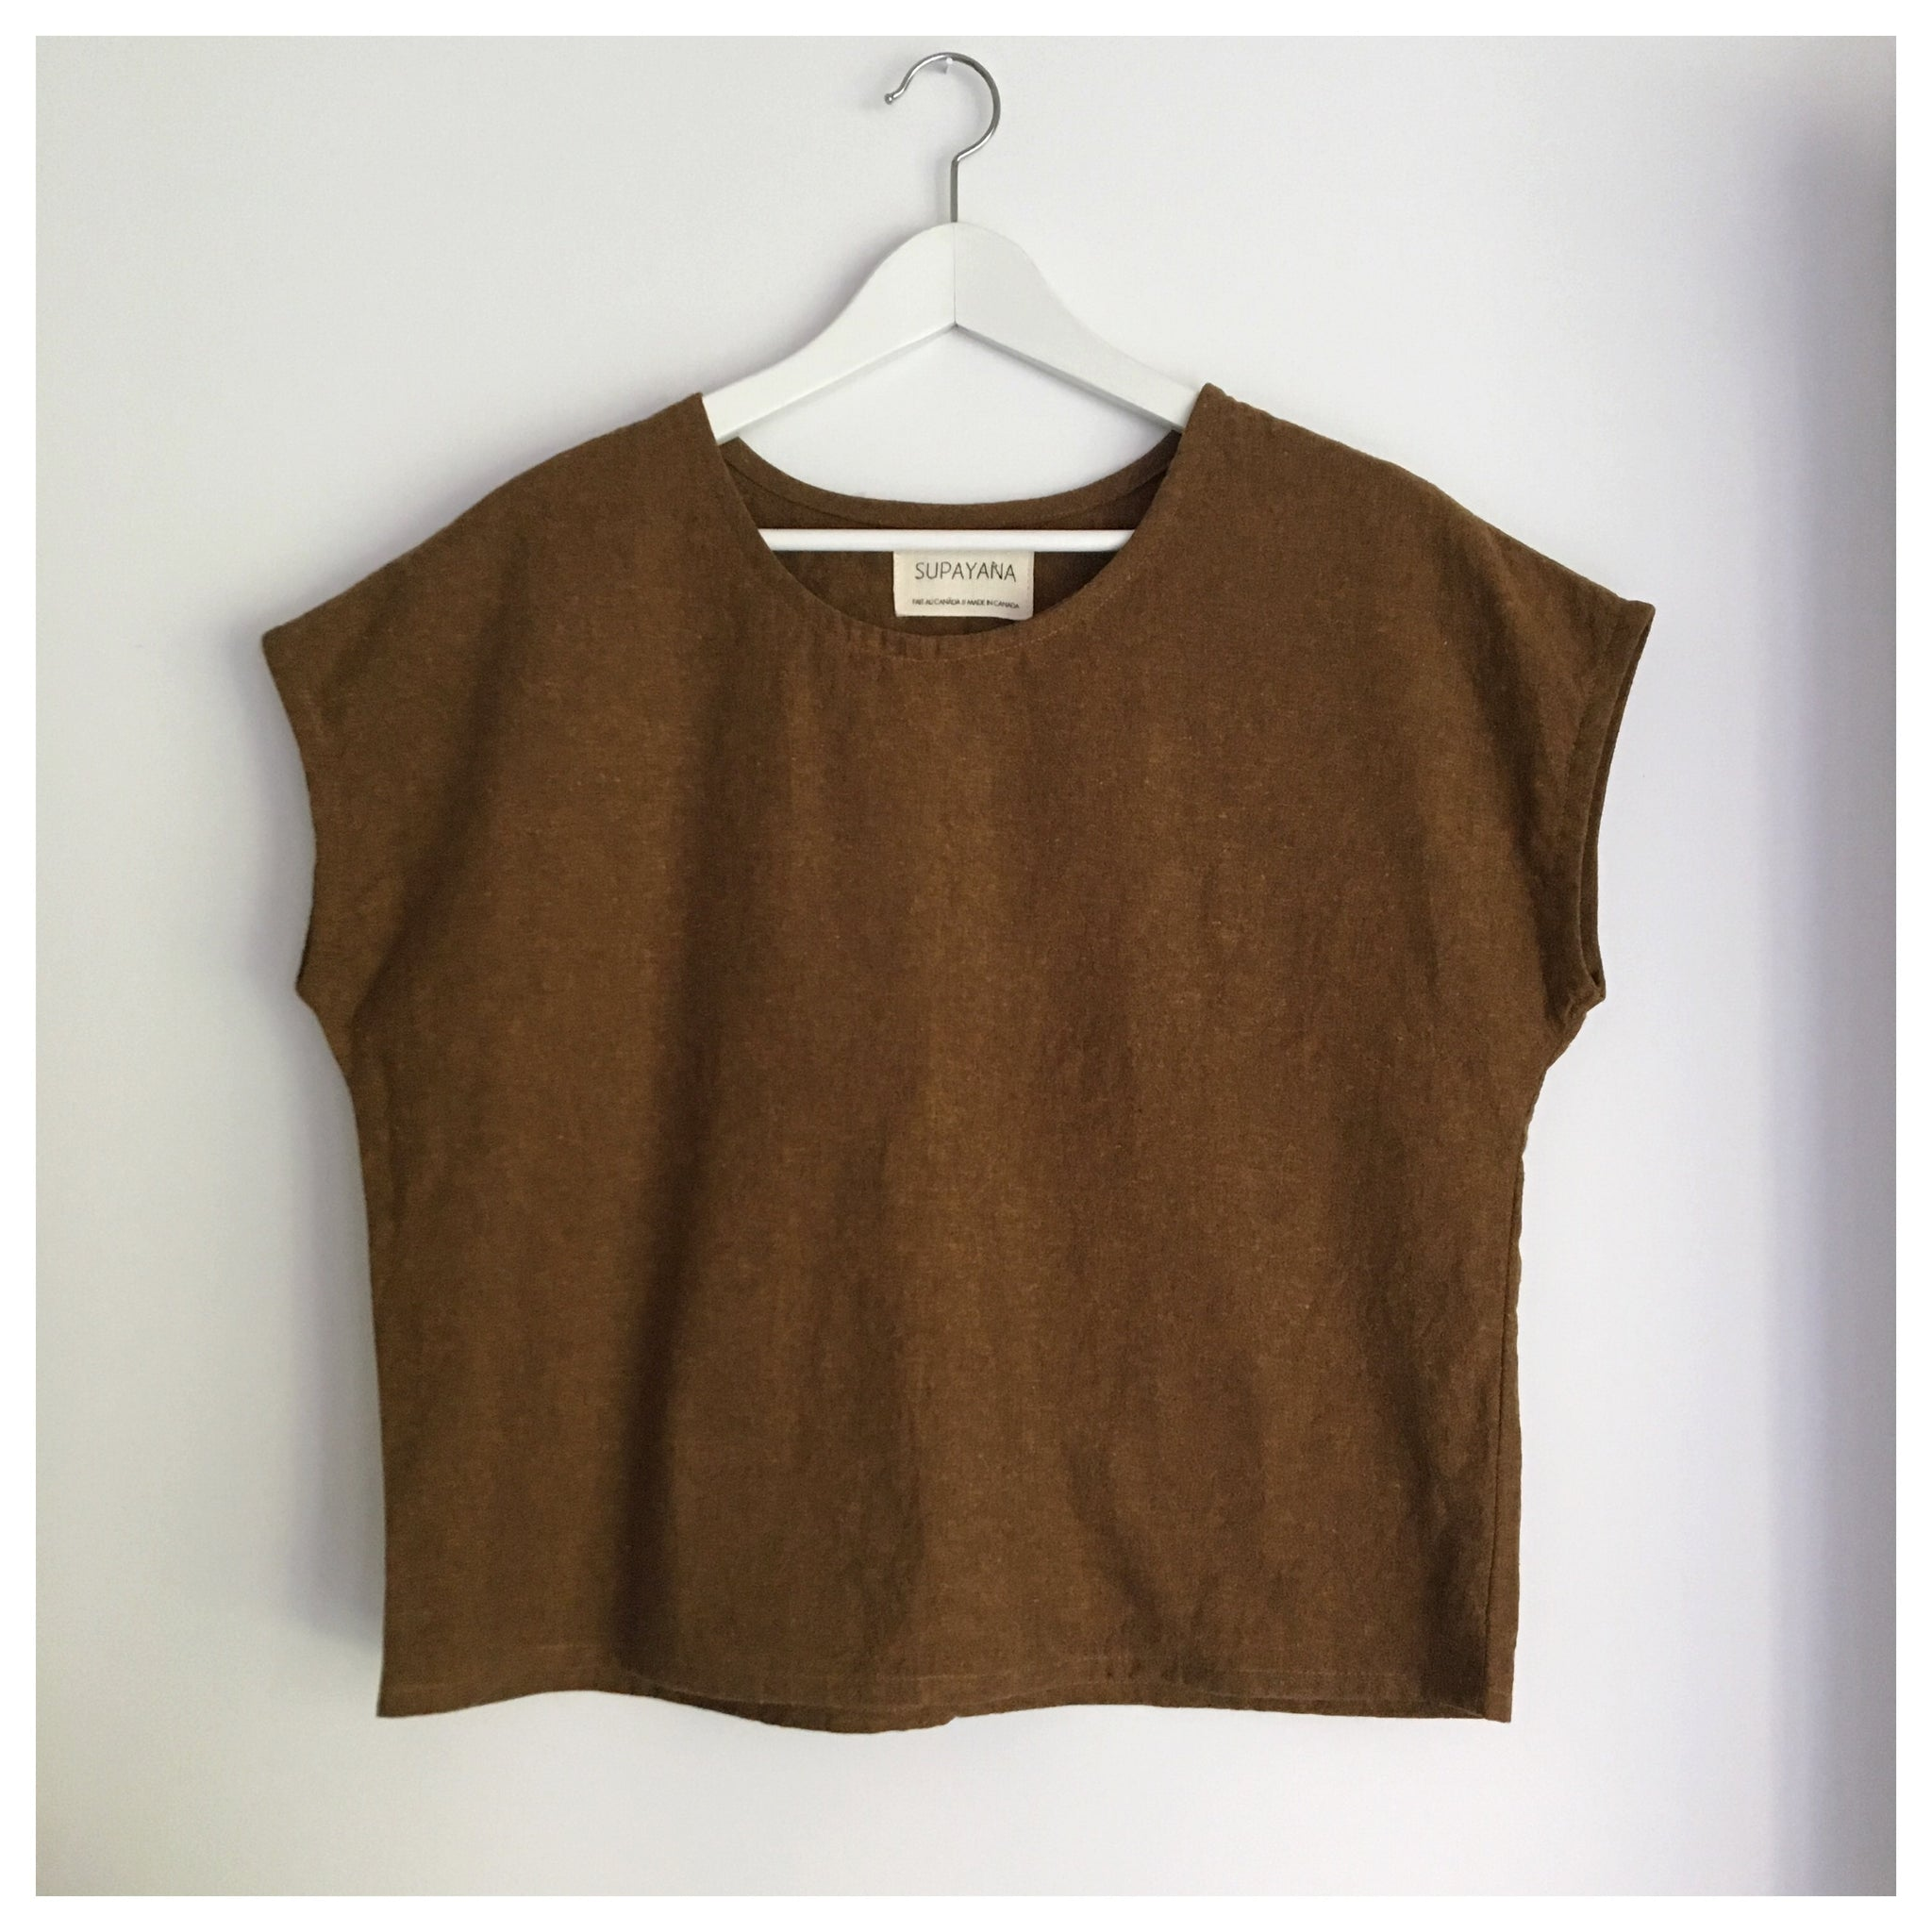 Rust linen cotton top